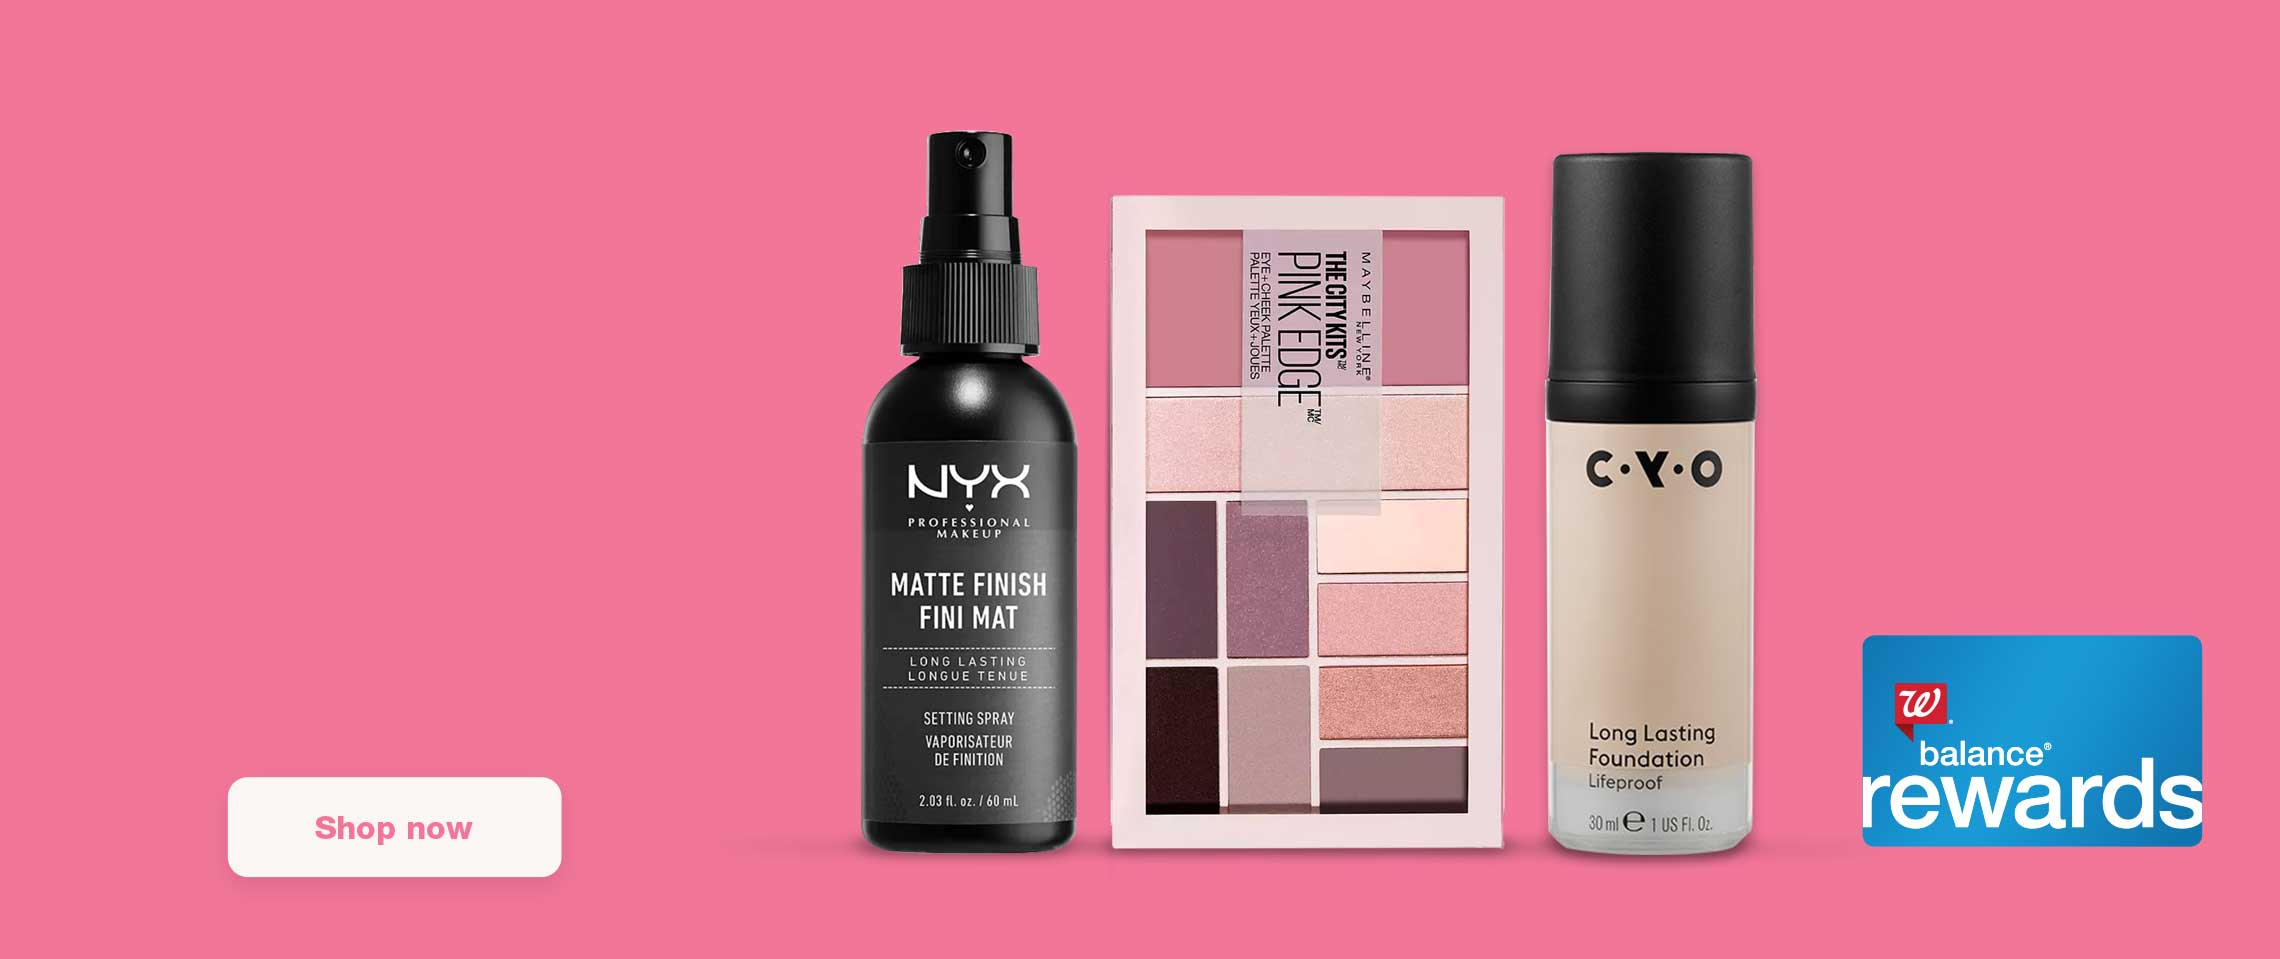 Buy 2 get 3rd FREE mix & match cosmetics, nail & accessories. Balance(R) Rewards. Shop now.